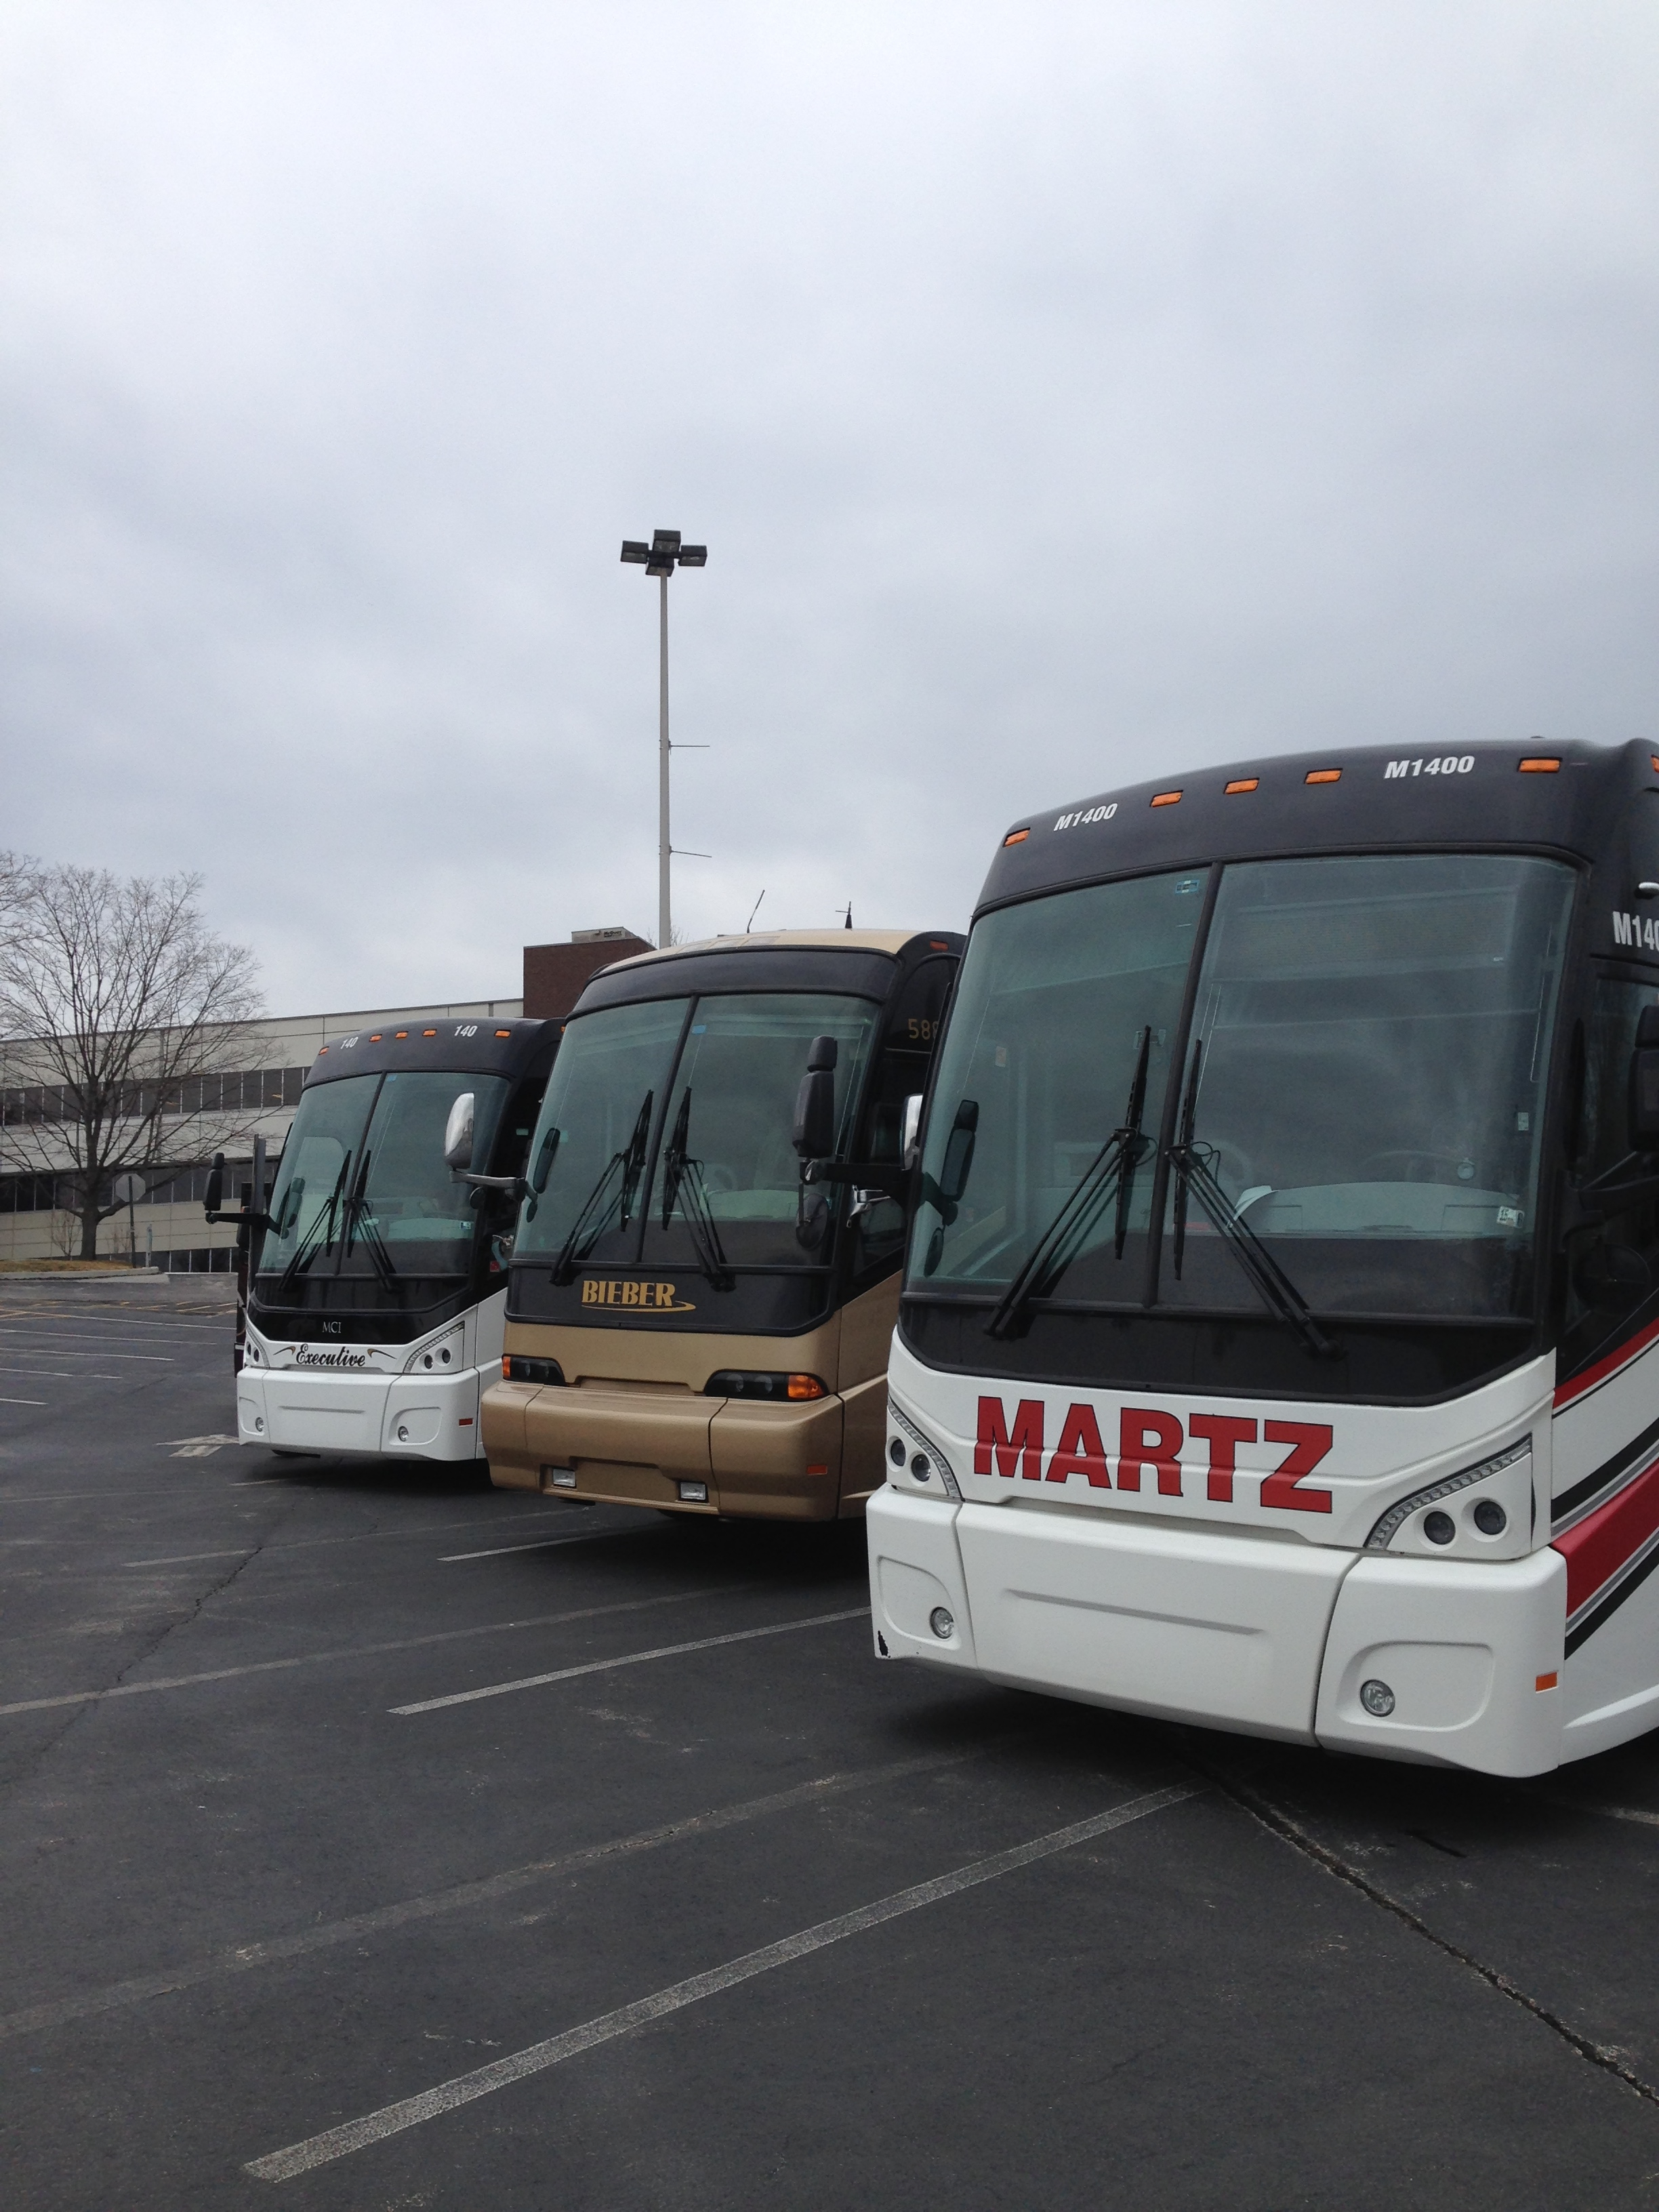 A few of the bus companies in attendance